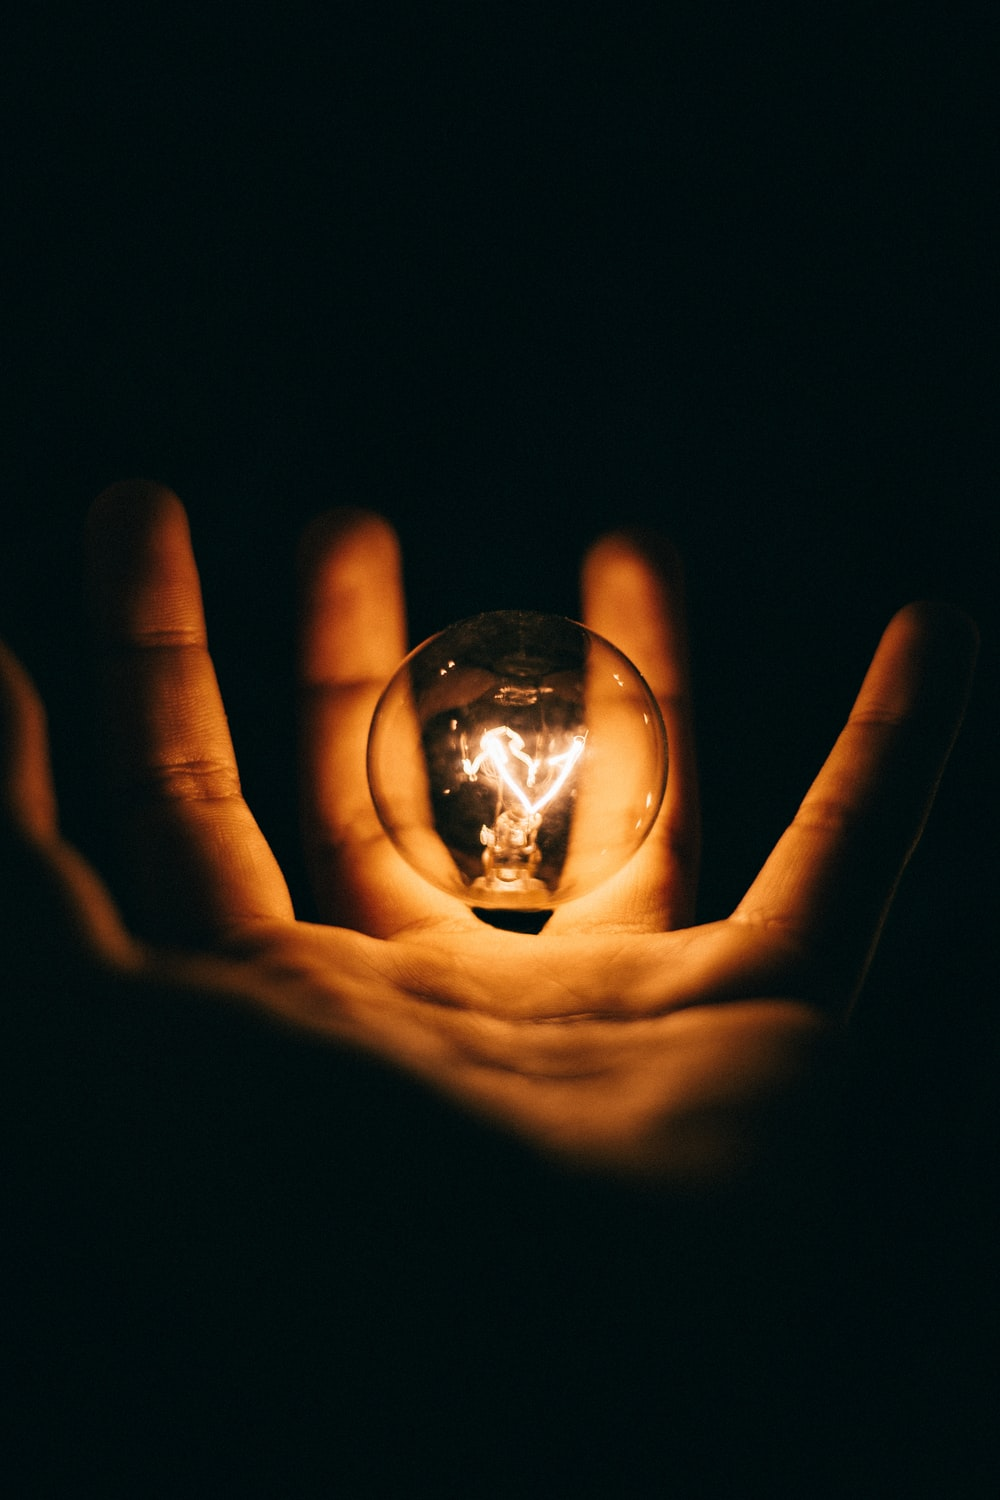 clear glass bulb on human palm